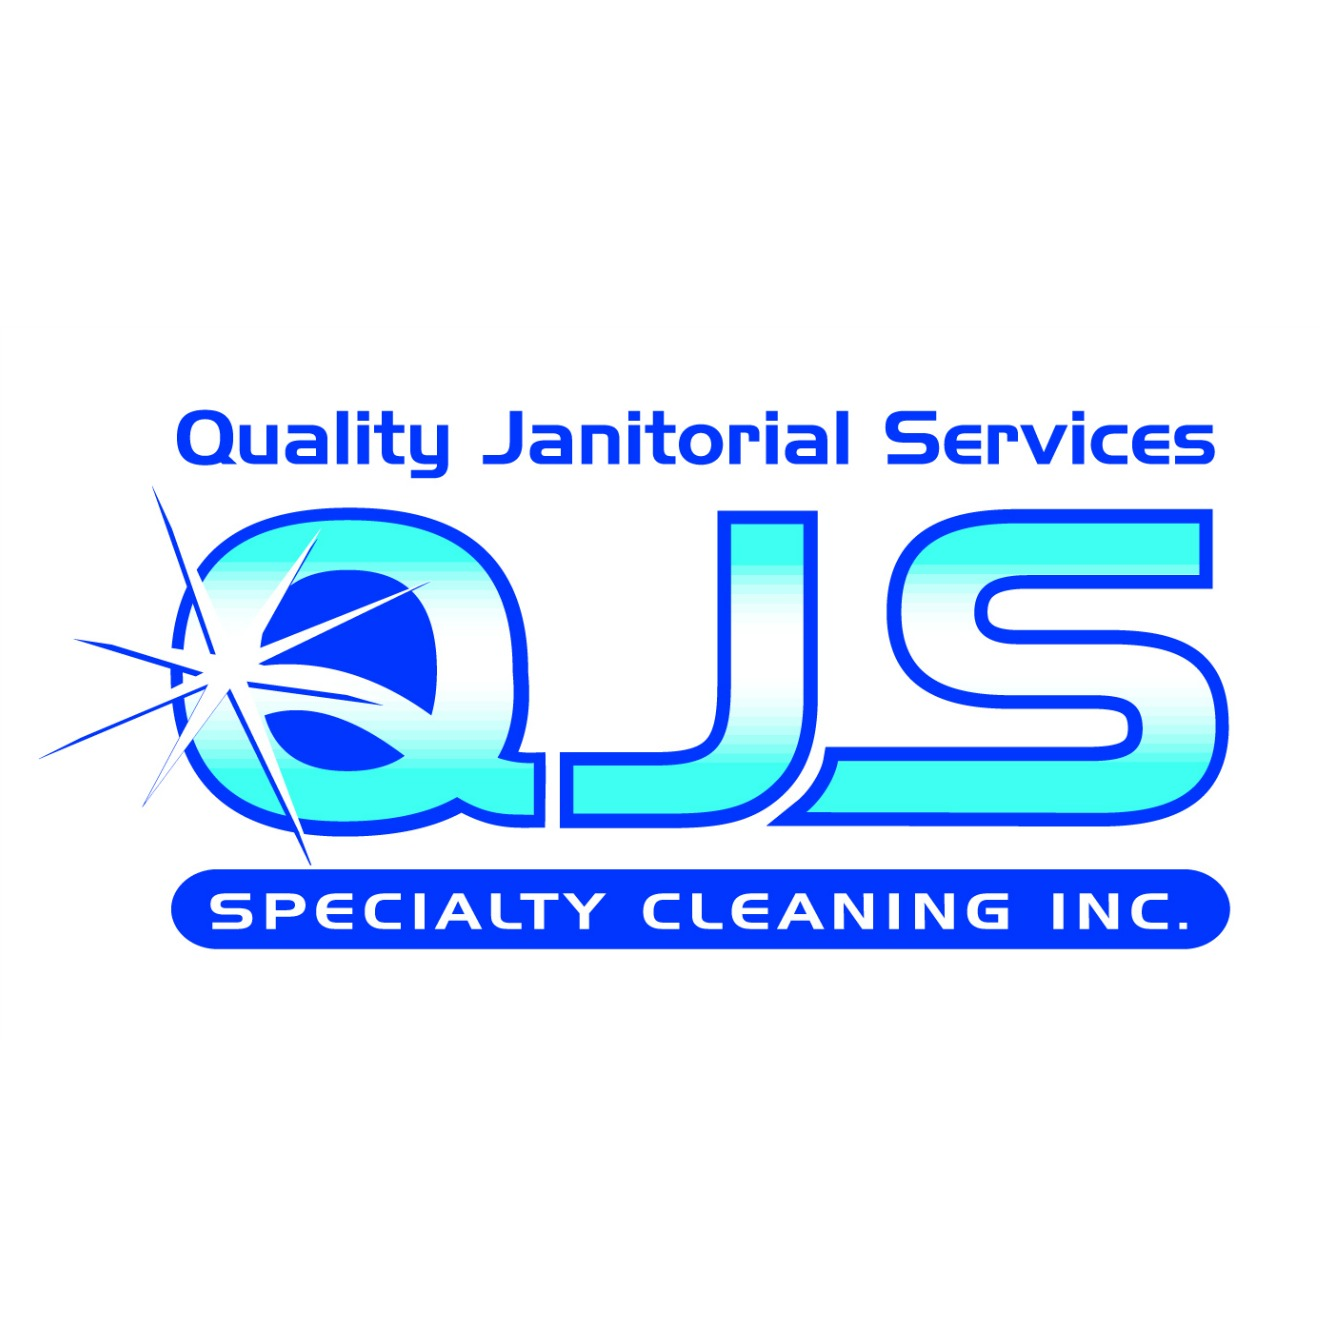 QJS Specialty Cleaning Inc.